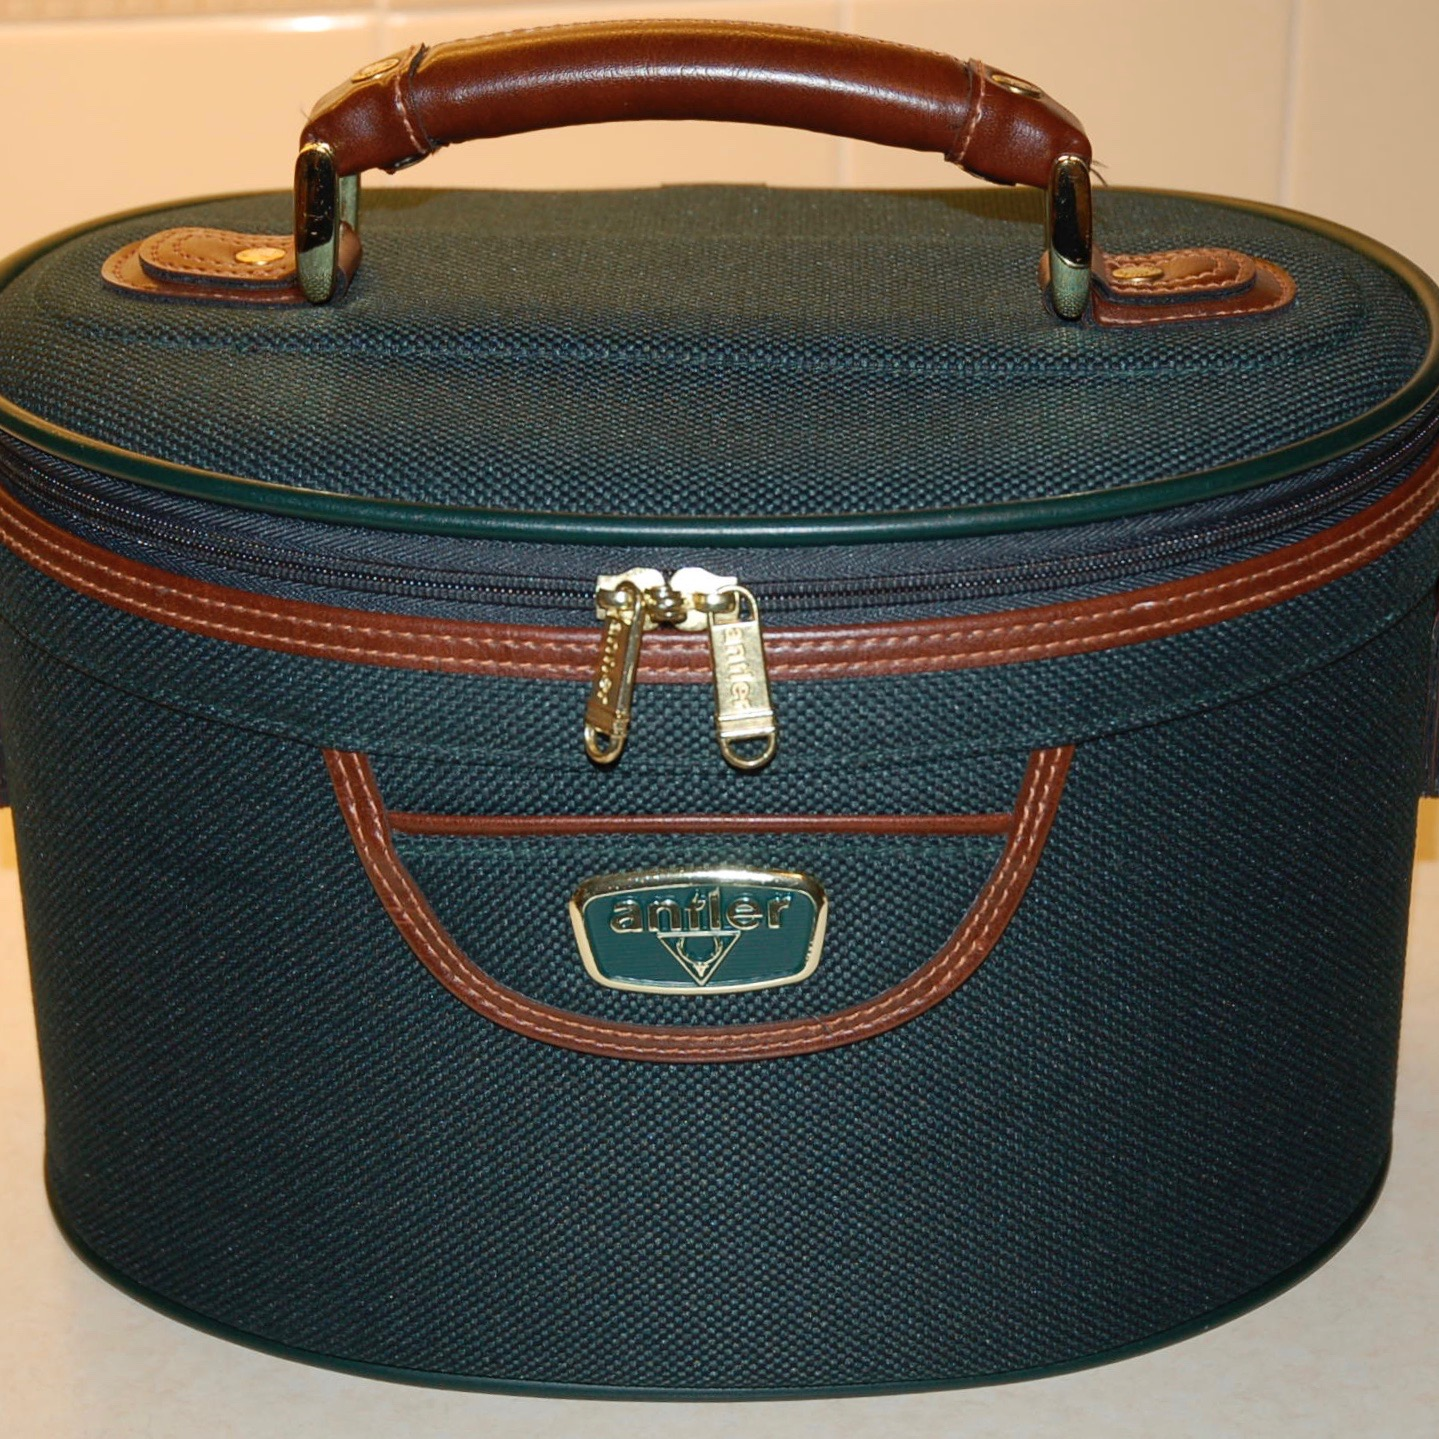 Photograph of a green oval vanity case